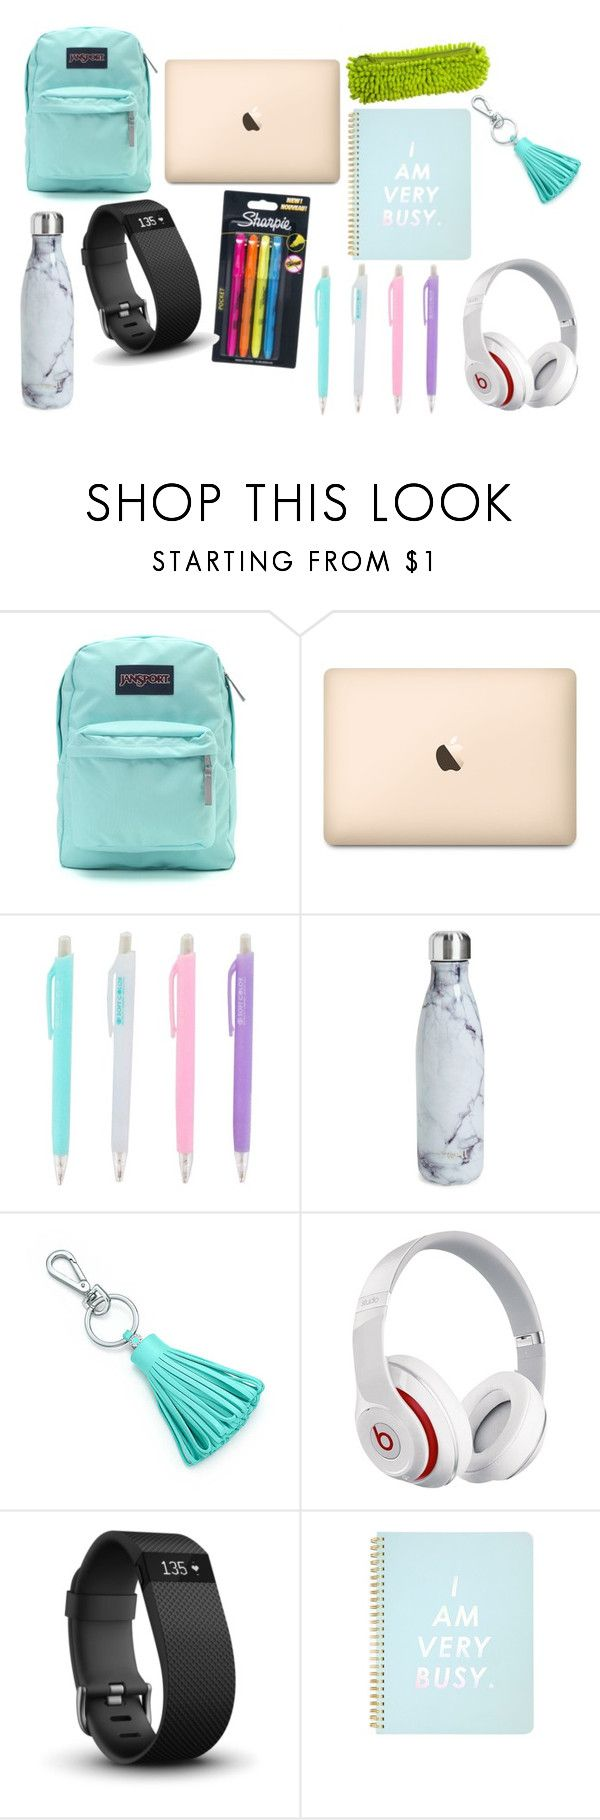 """school set 2"" by smithylol on Polyvore featuring interior, interiors, interior design, home, home decor, interior decorating, JanSport, Sharpie, S'well and Tiffany & Co."